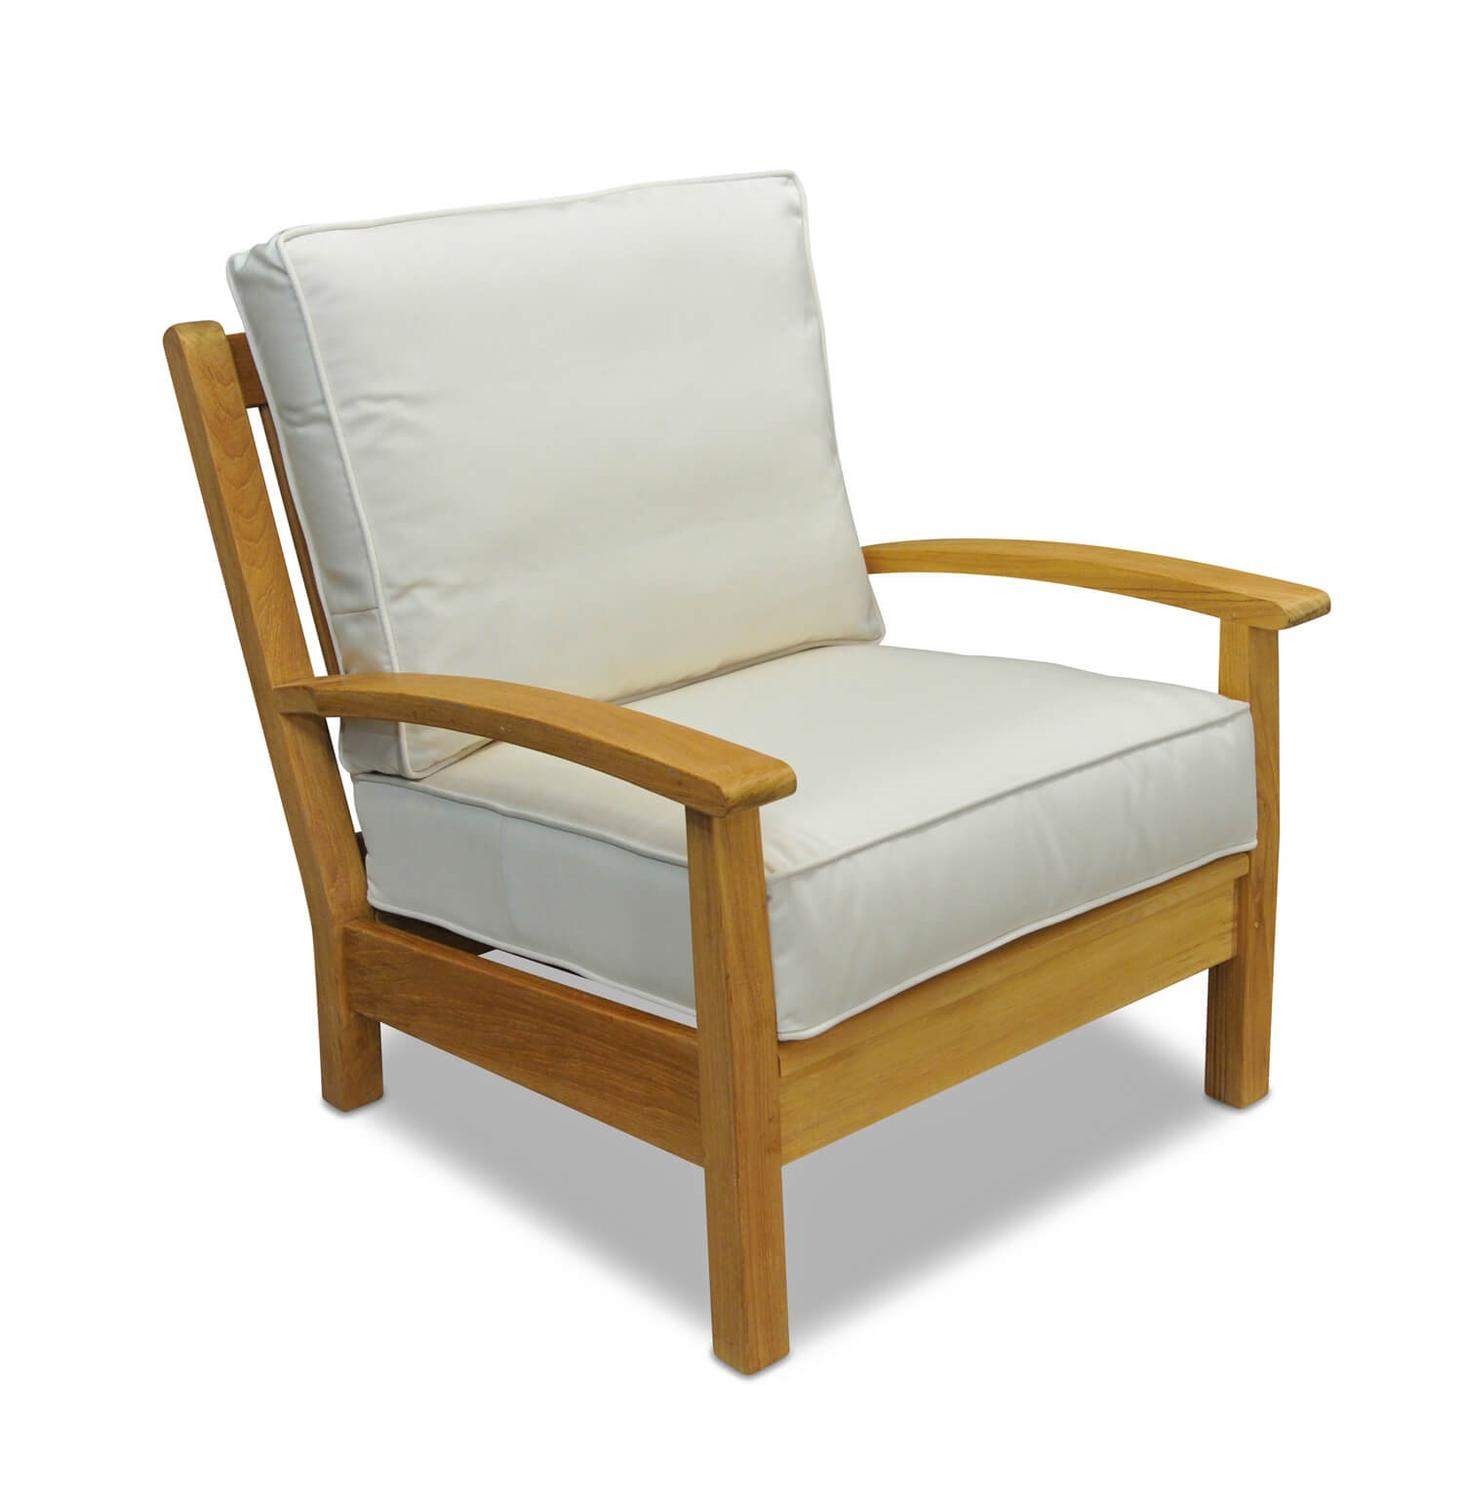 "34"" Natural Teak Deep Seating Outdoor Patio Lounge Chair with Canvas Cushions"